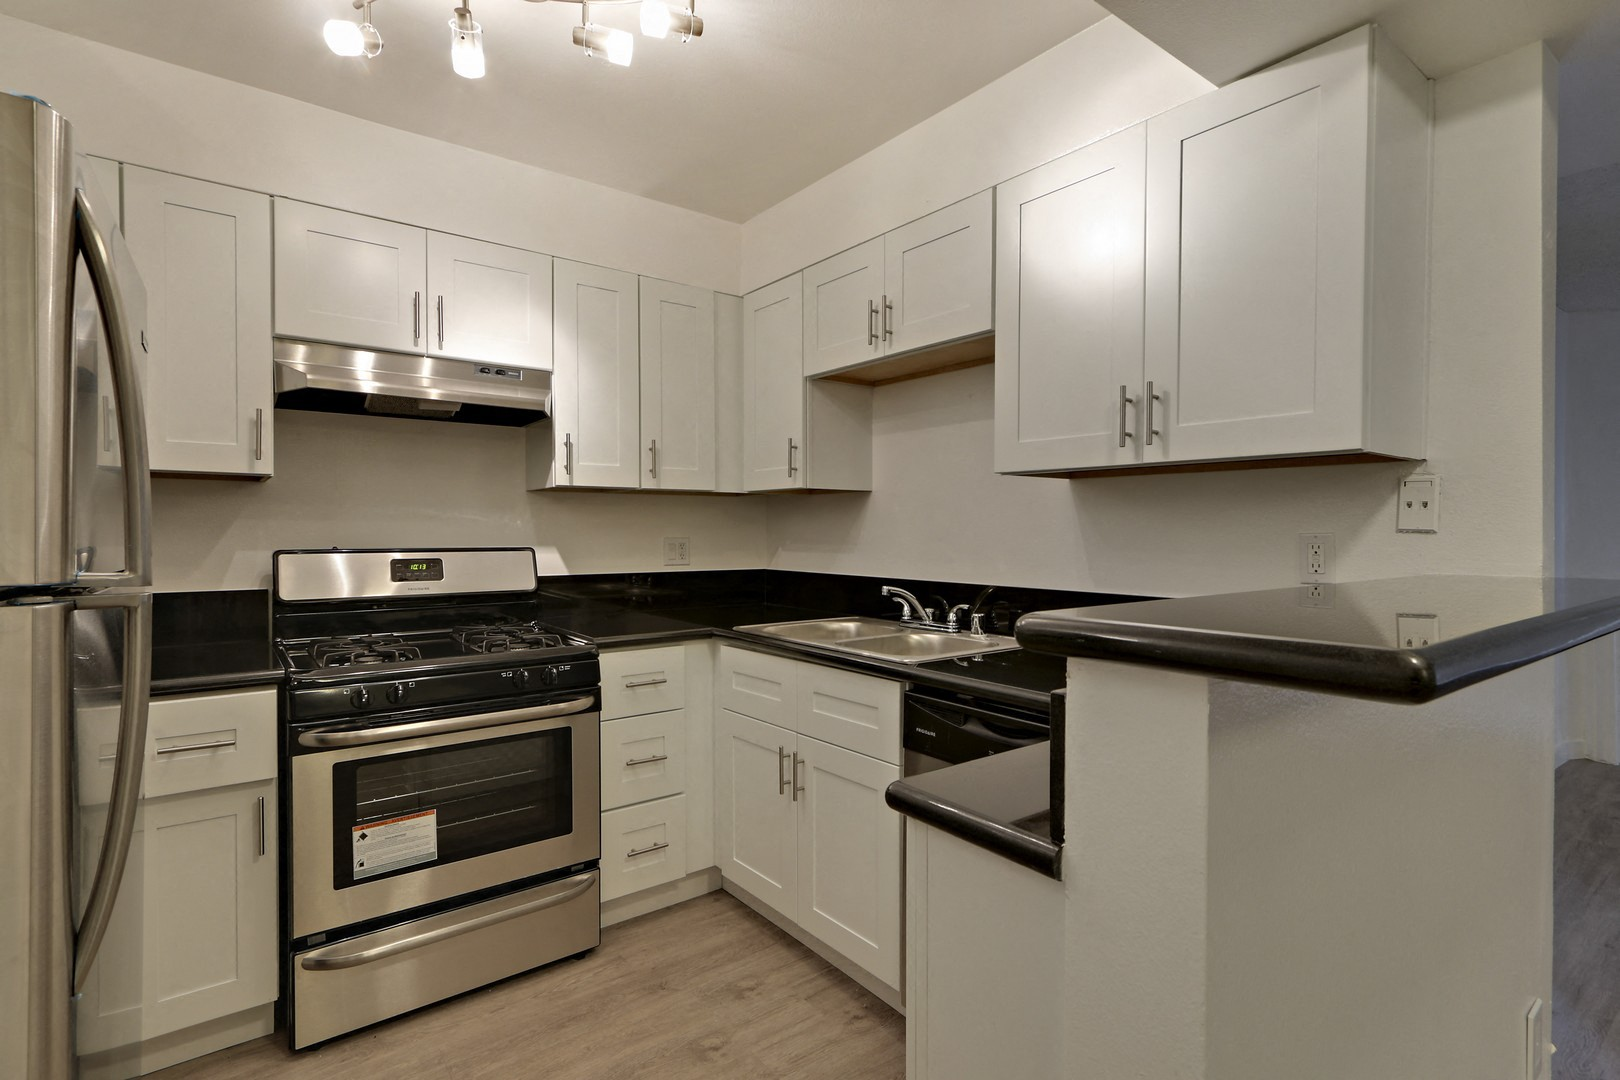 Beverlywood Luxury Apartments for rent